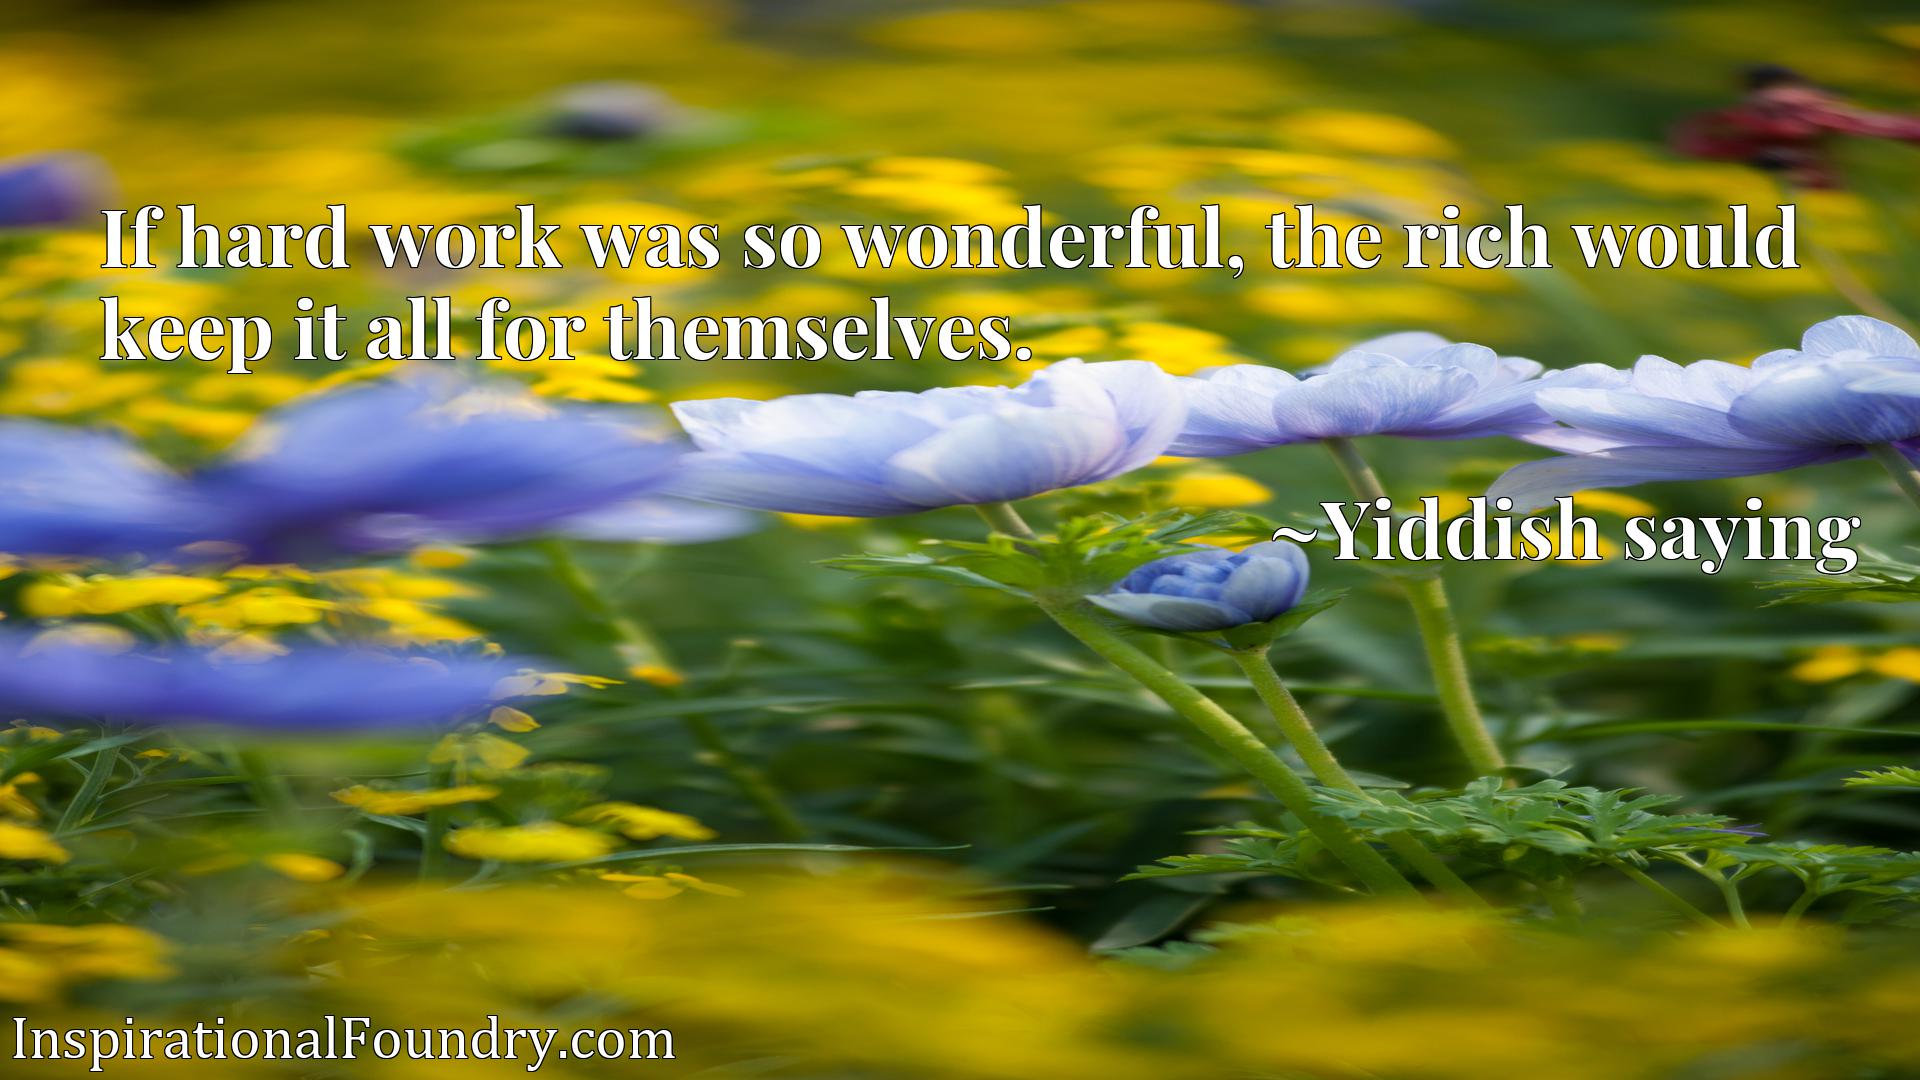 Quote Picture :If hard work was so wonderful, the rich would keep it all for themselves.